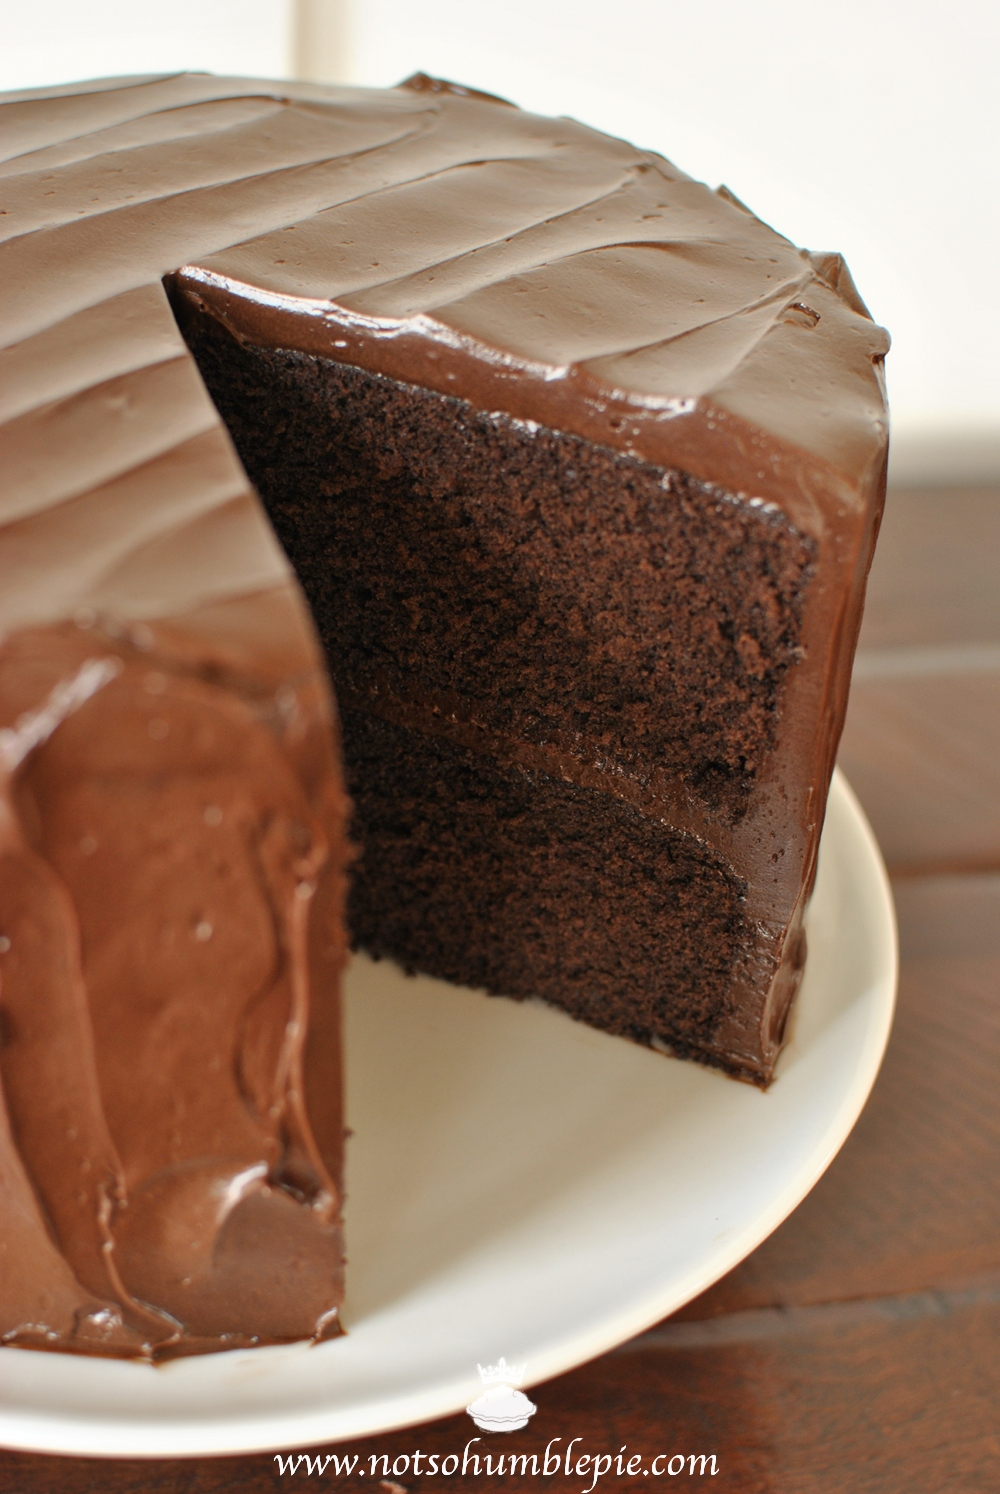 Images Of Chocolate Cake : Not So Humble Pie: Big Chocolate Cake